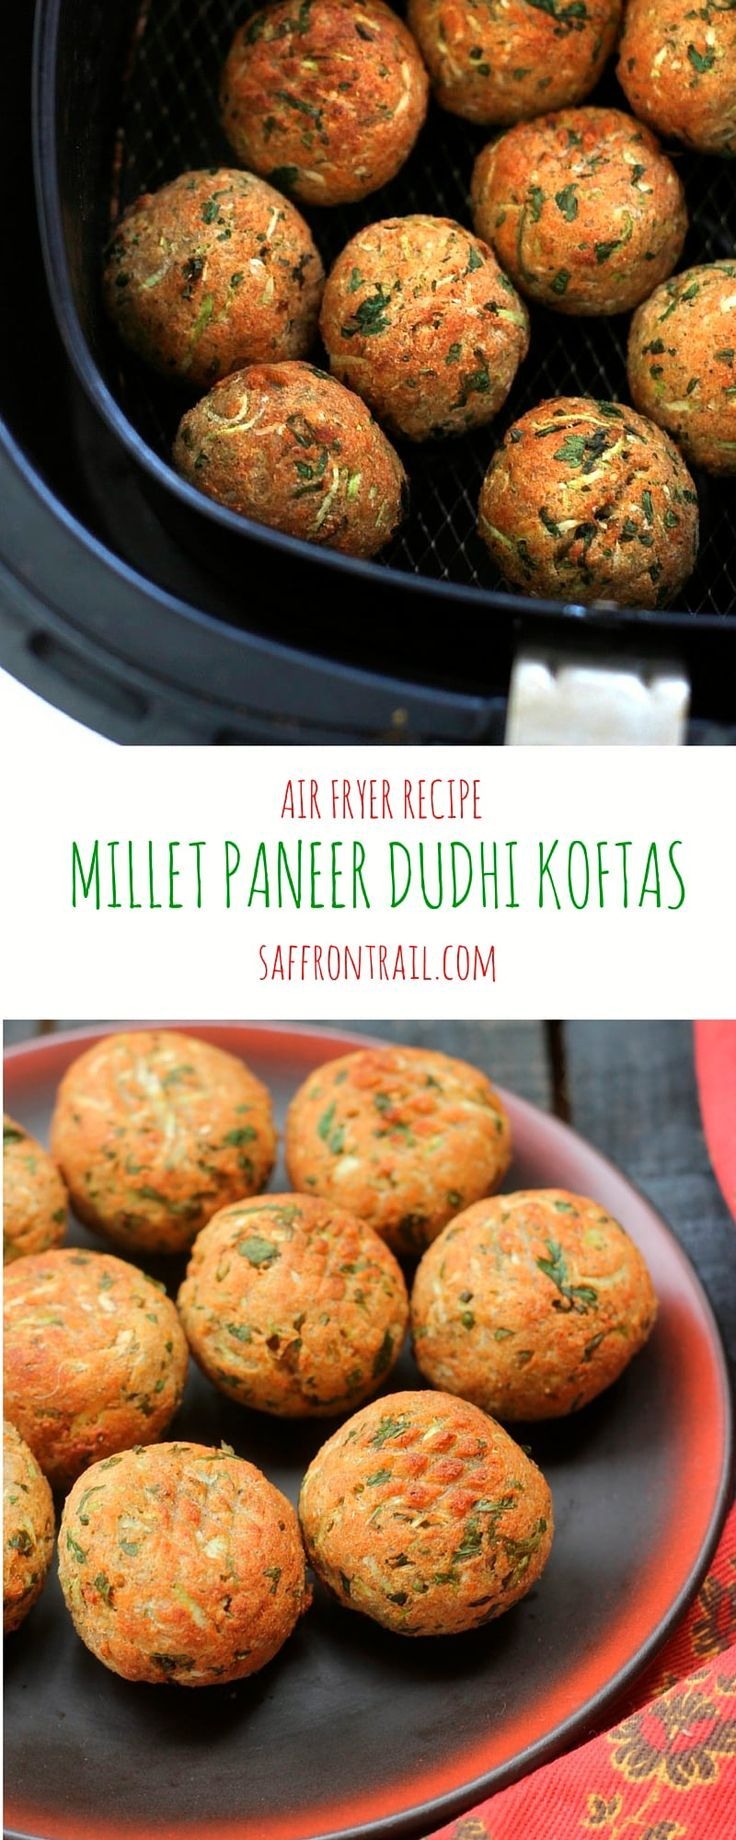 Check out paneer millet and dudhi koftas airfryer its so easy indian food recipes forumfinder Gallery